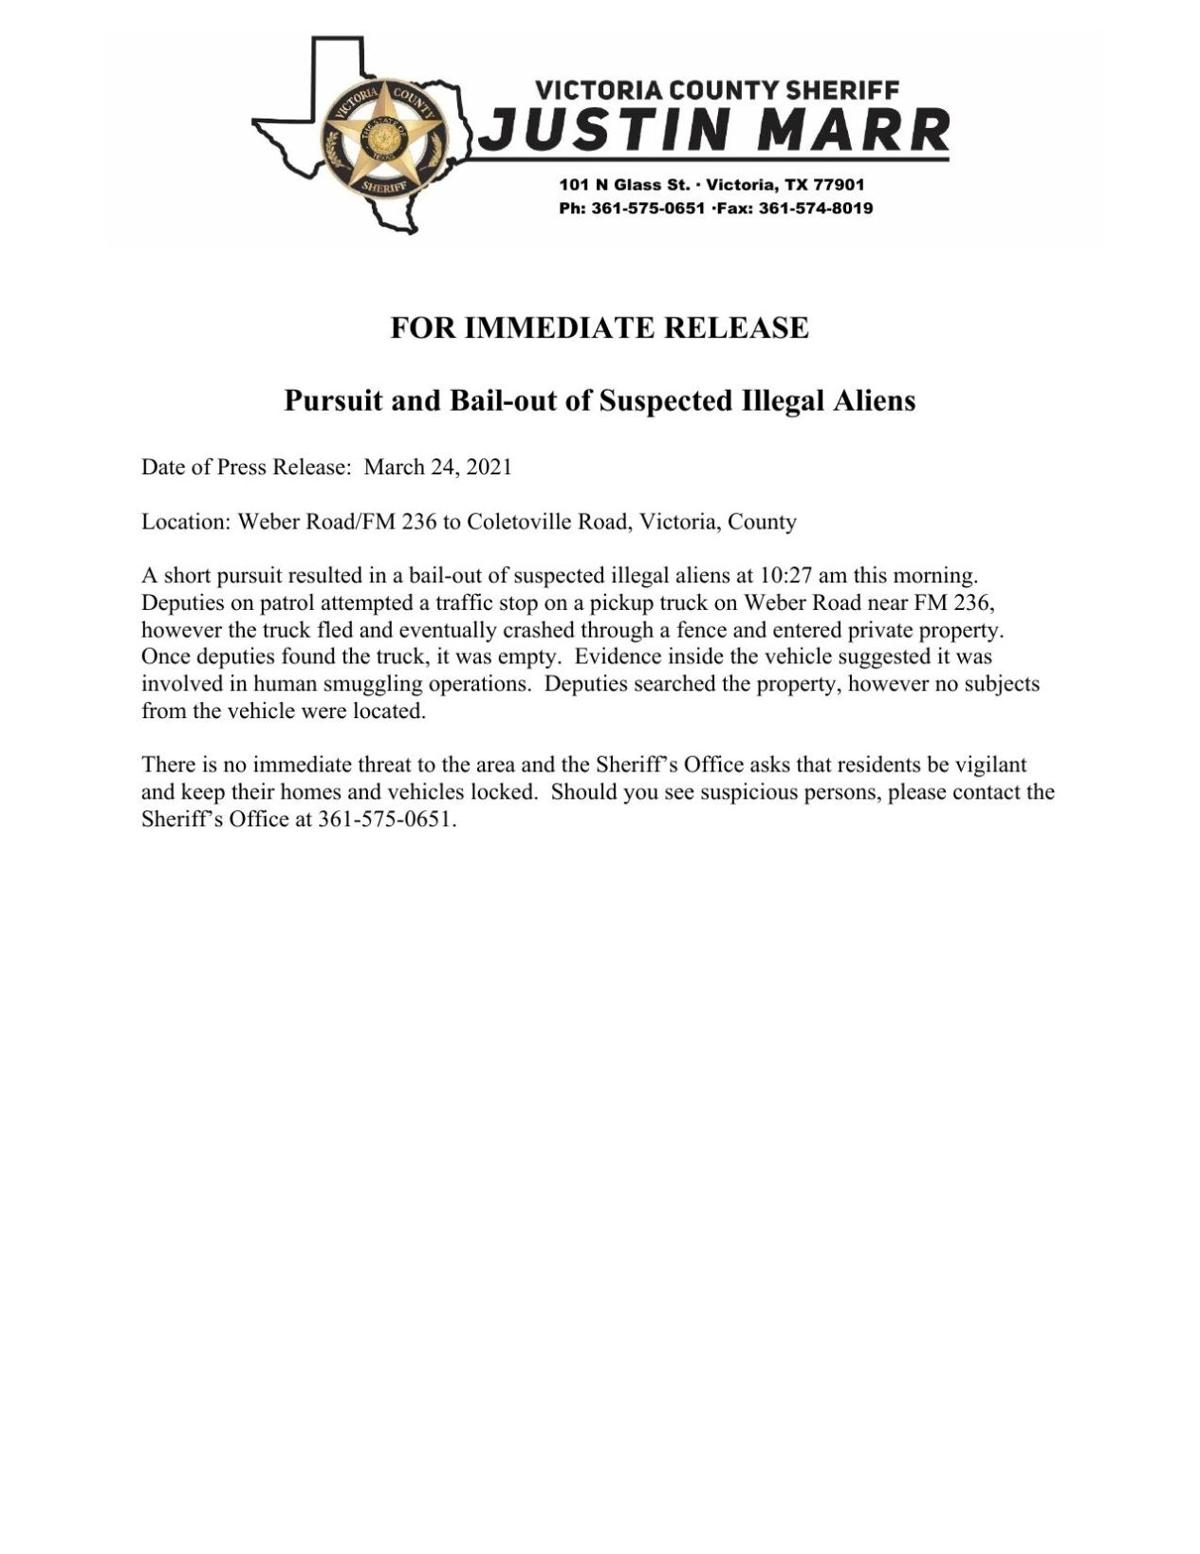 VCSO News Release